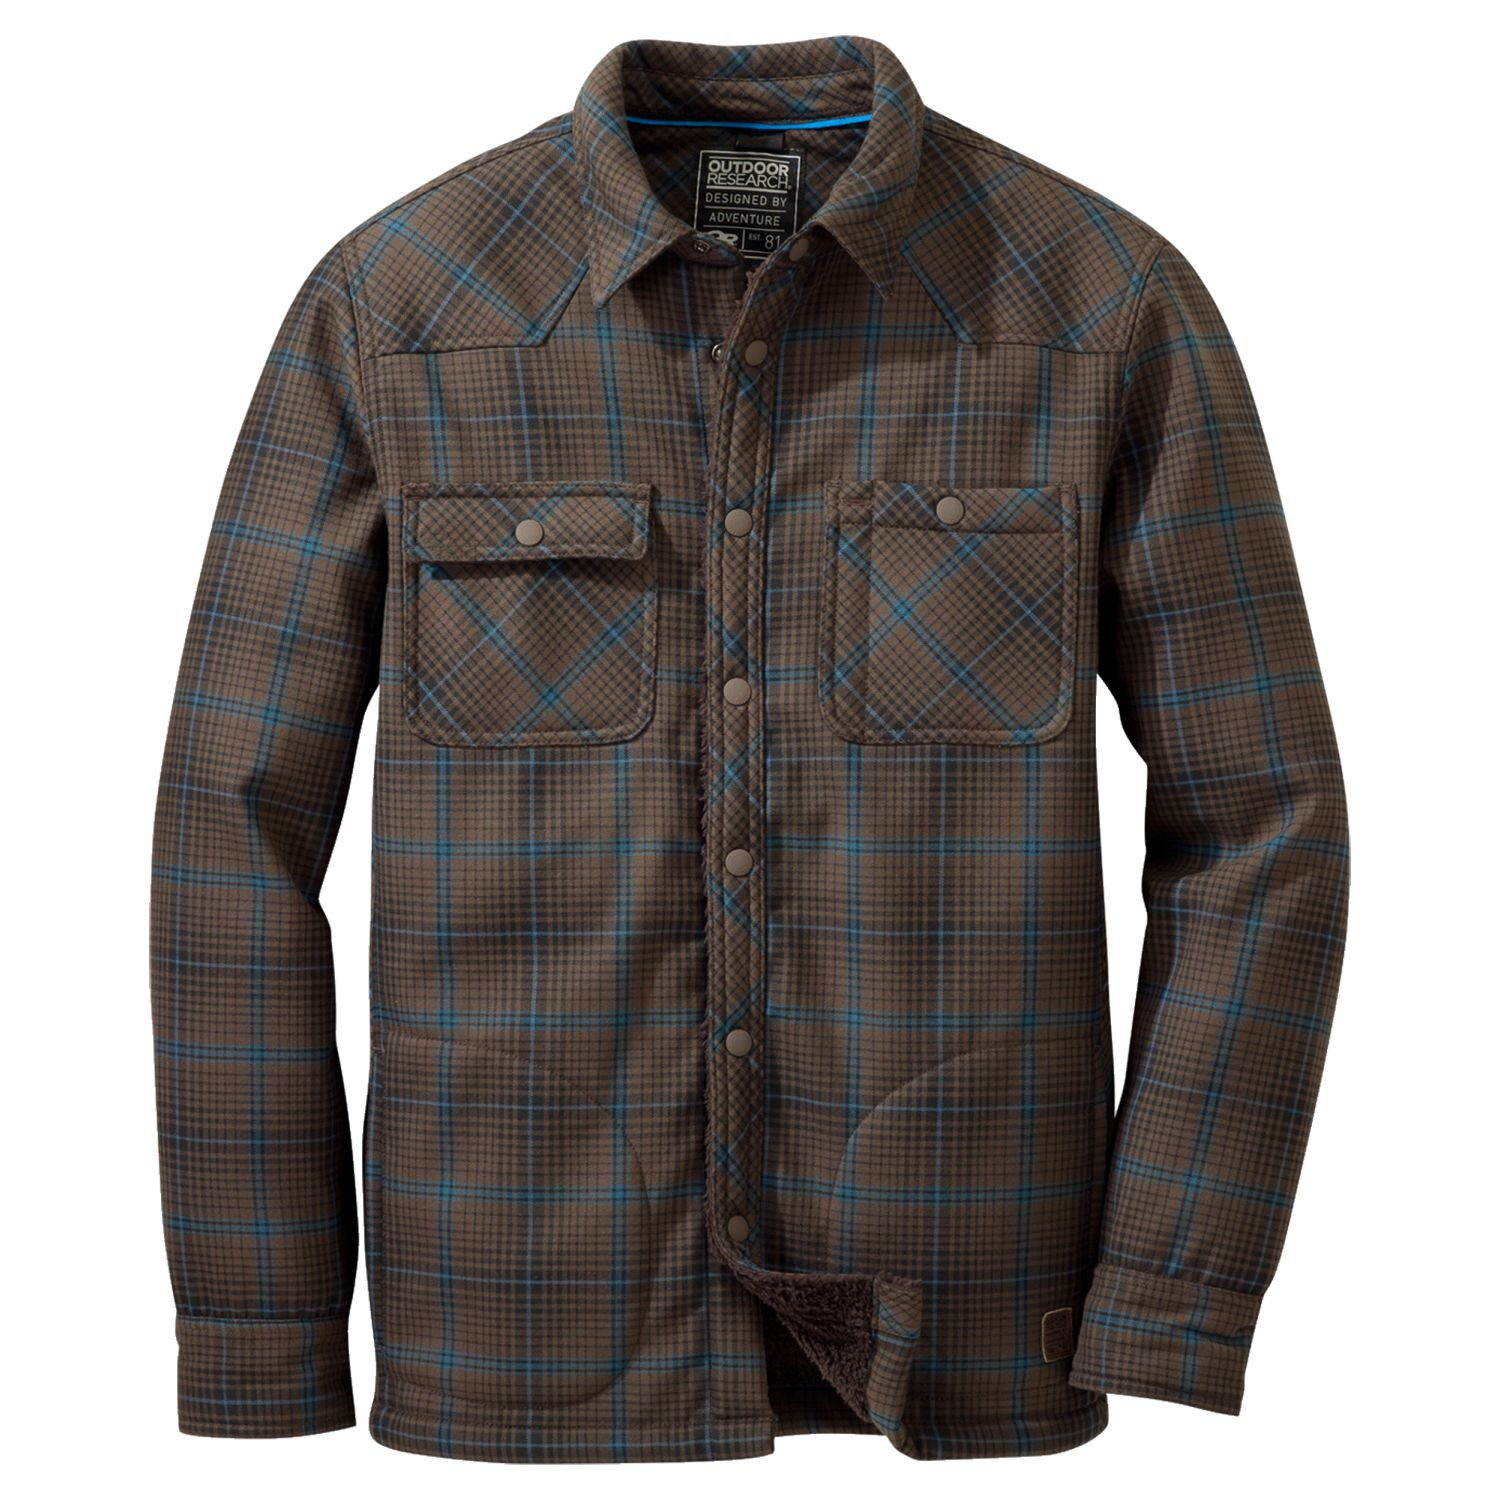 Outdoor Research Sherman Jacket